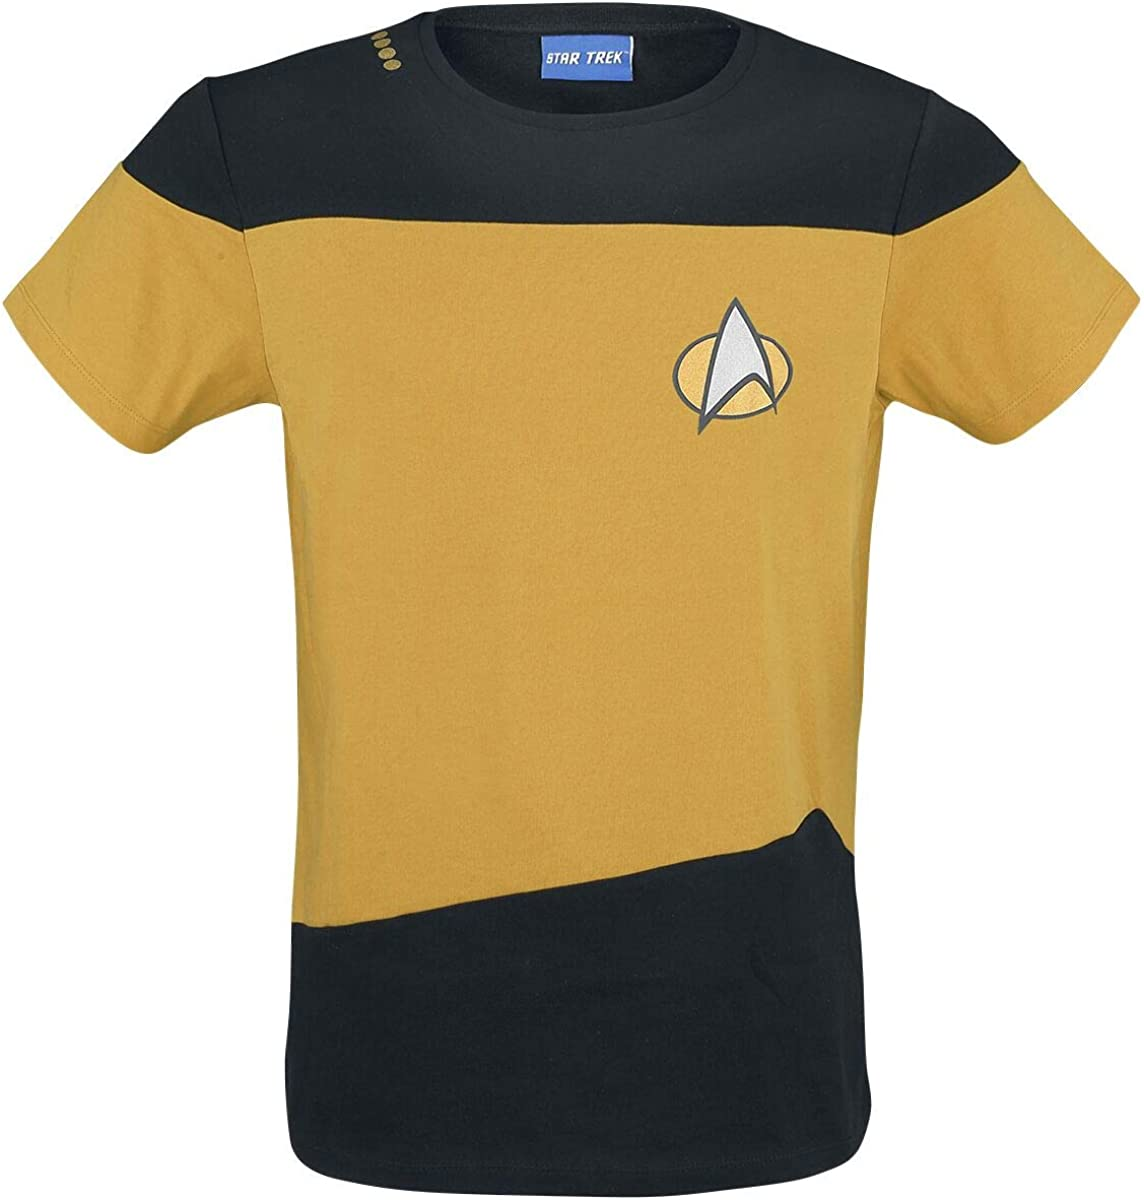 Star Trek Uniform Gelb Camiseta Amarillo/Negro L: Amazon.es: Ropa ...